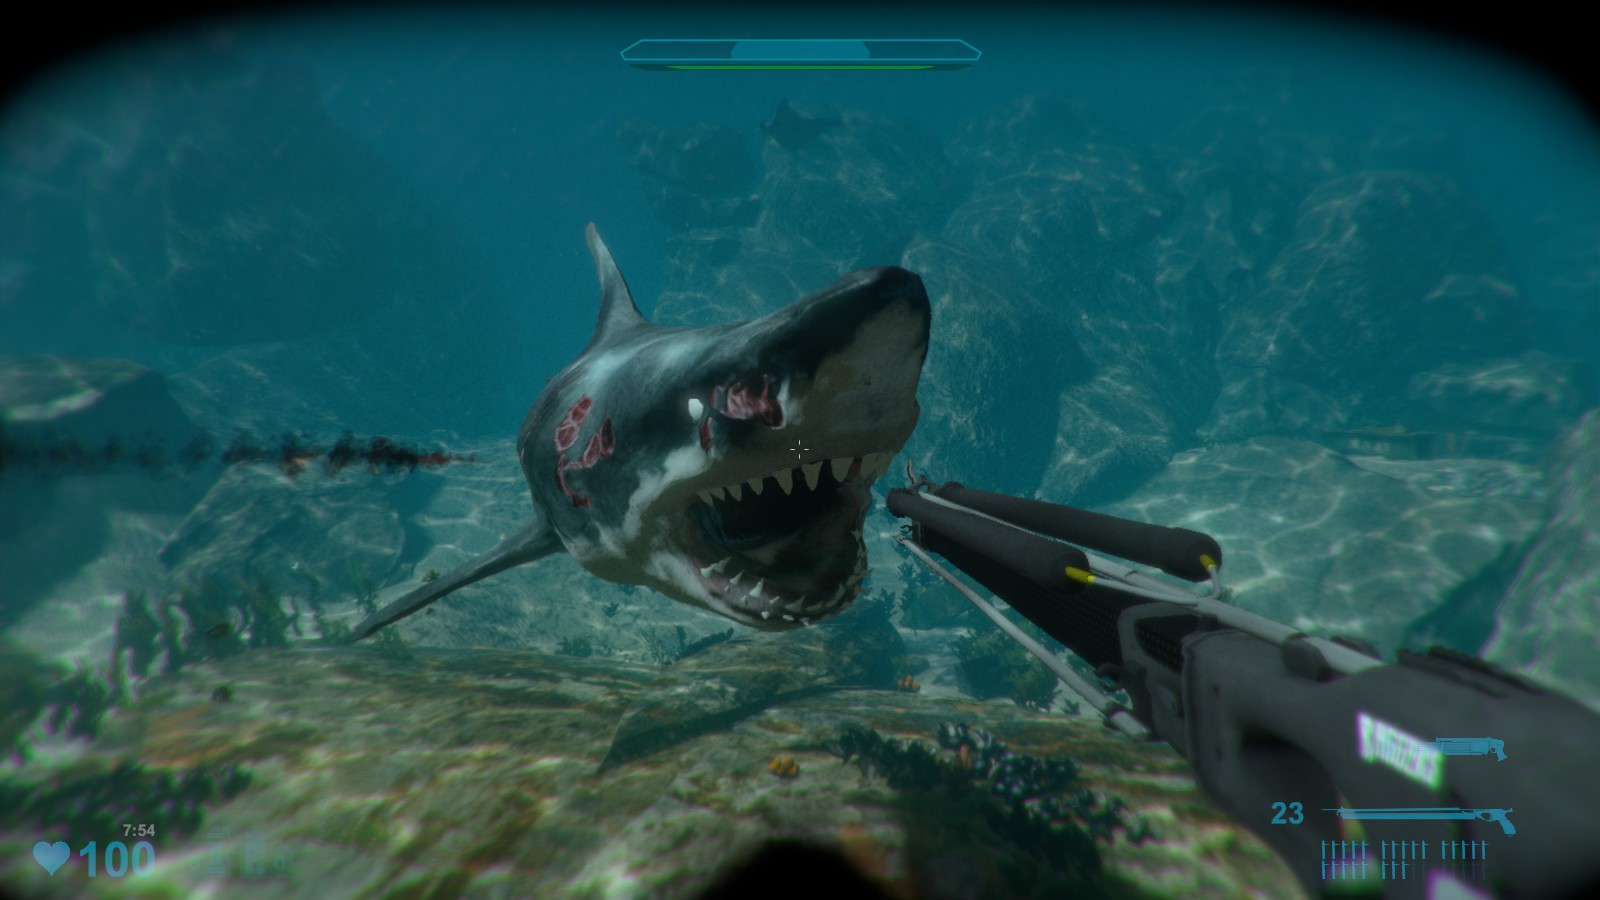 Shark Attack - Play Free Shark Games Online